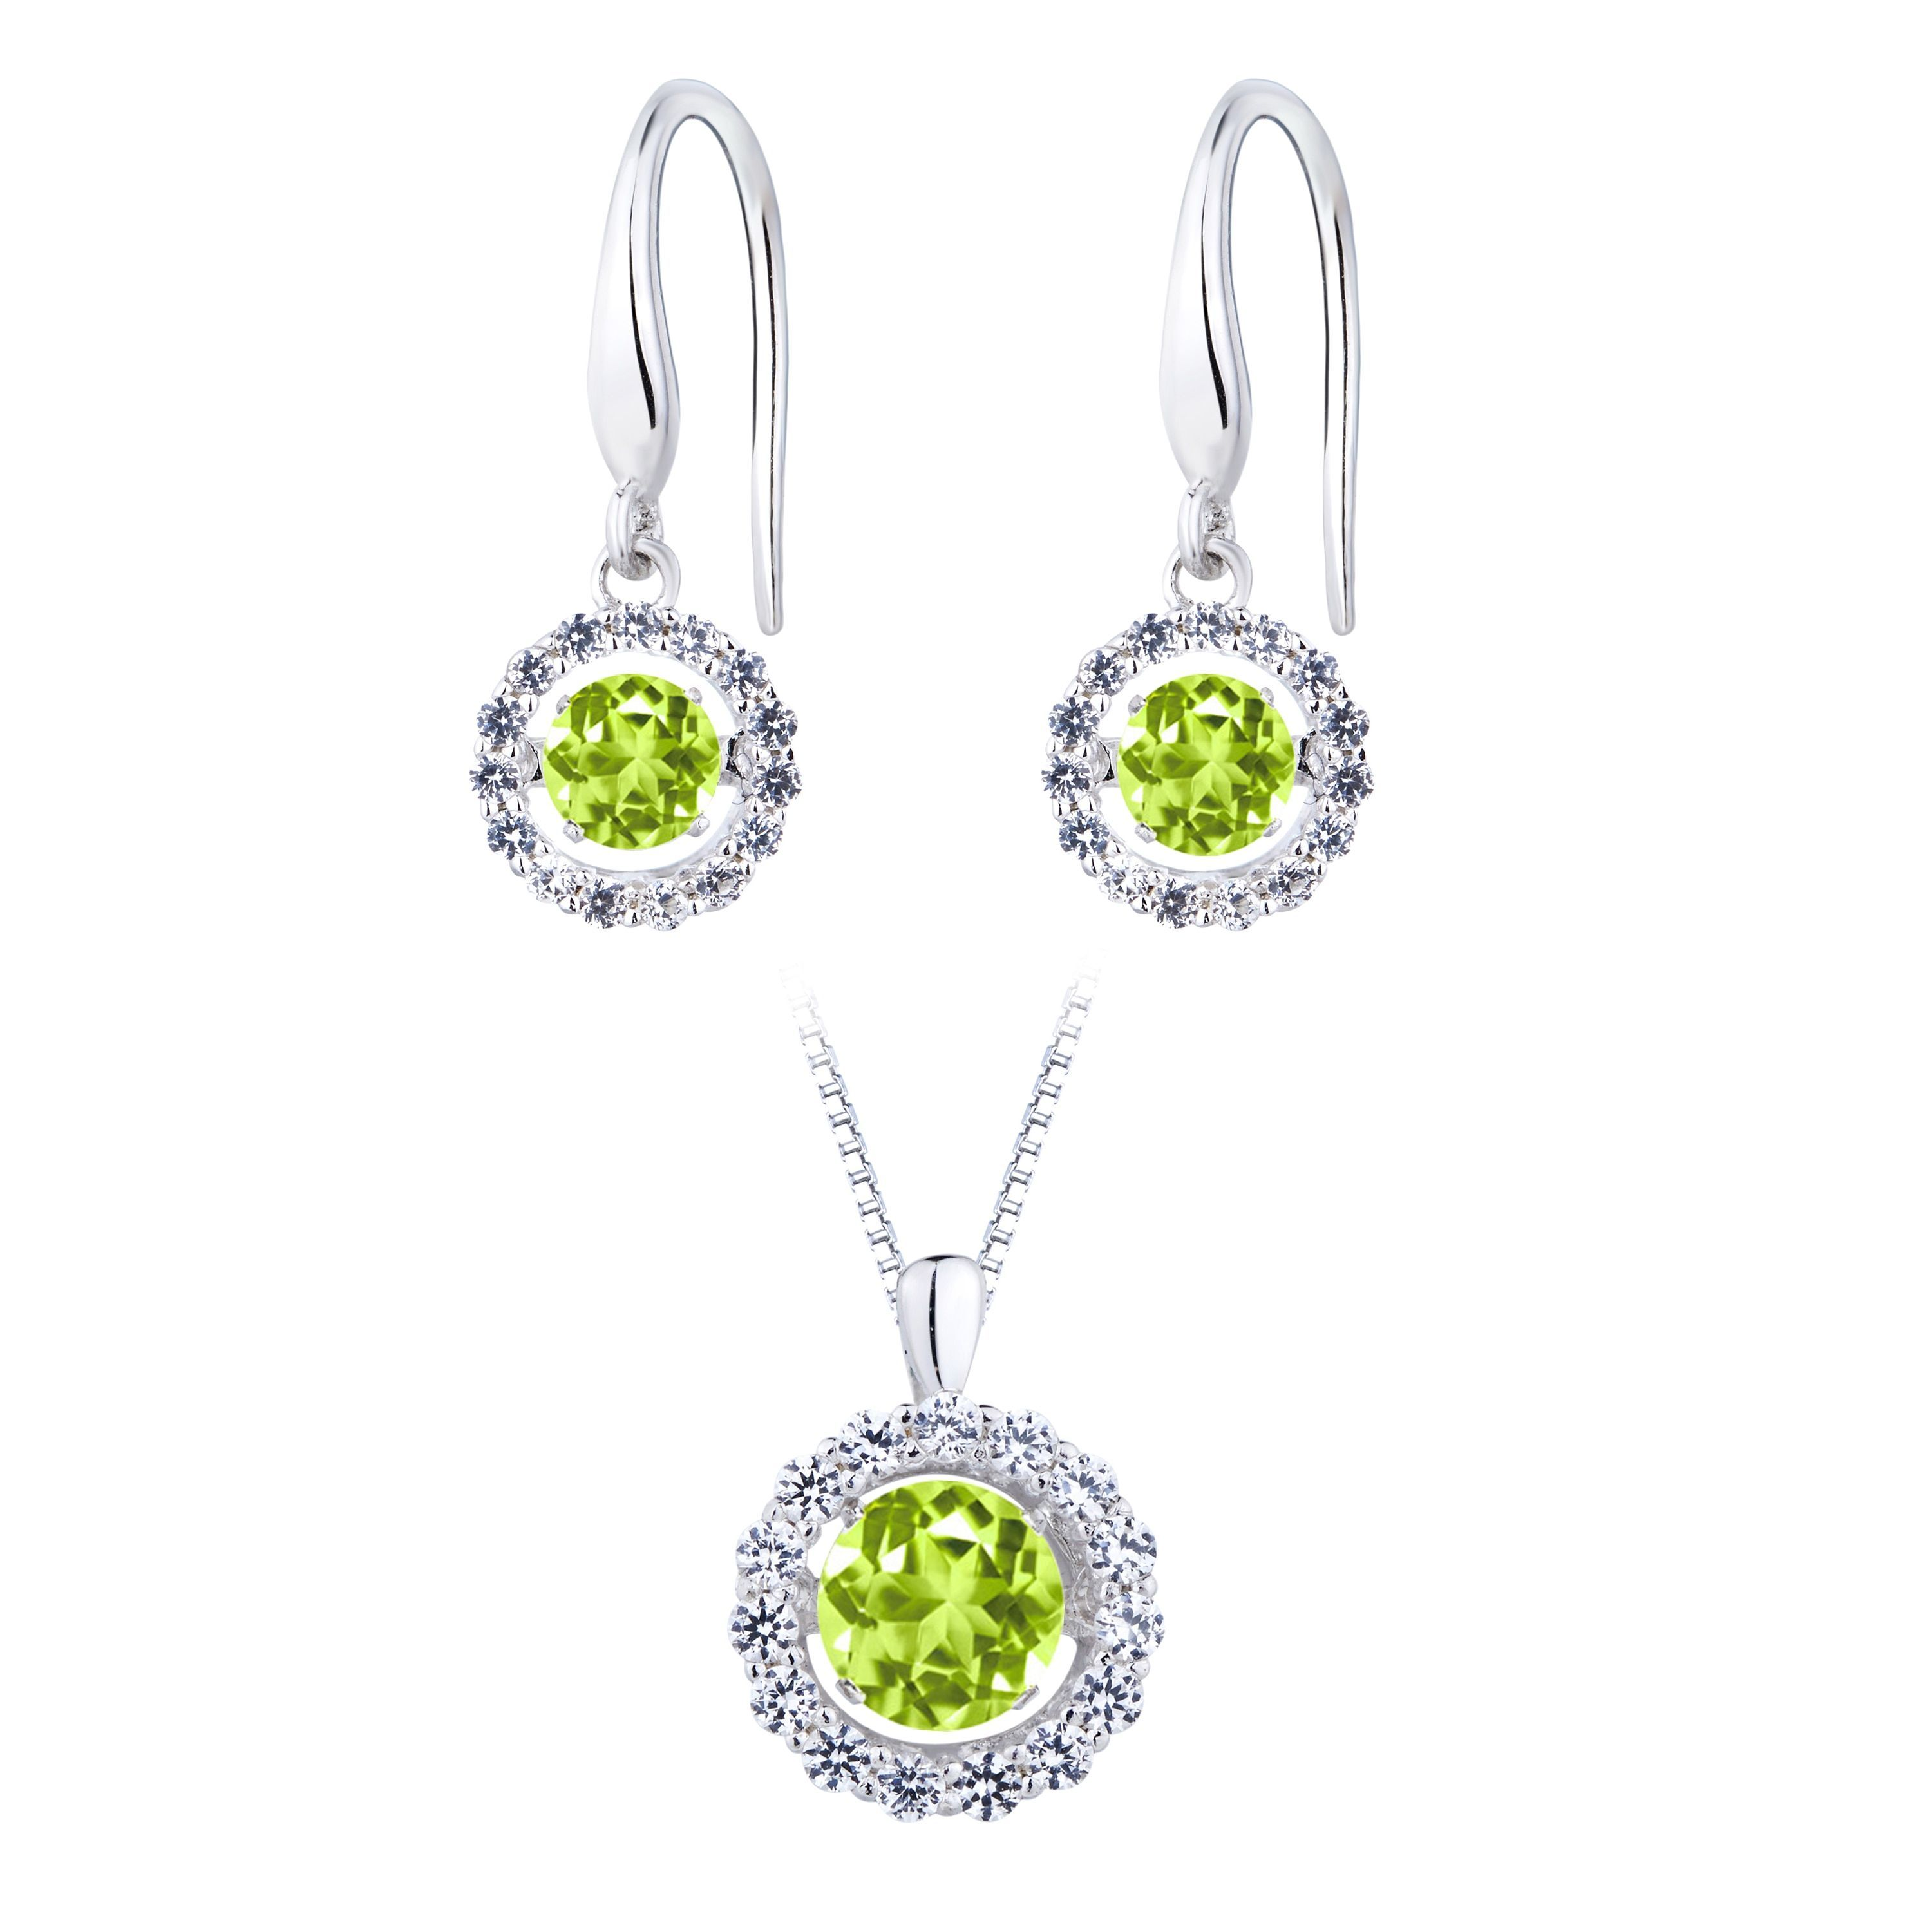 Titan silver simulatedperidot dancing stone earring and pendant set